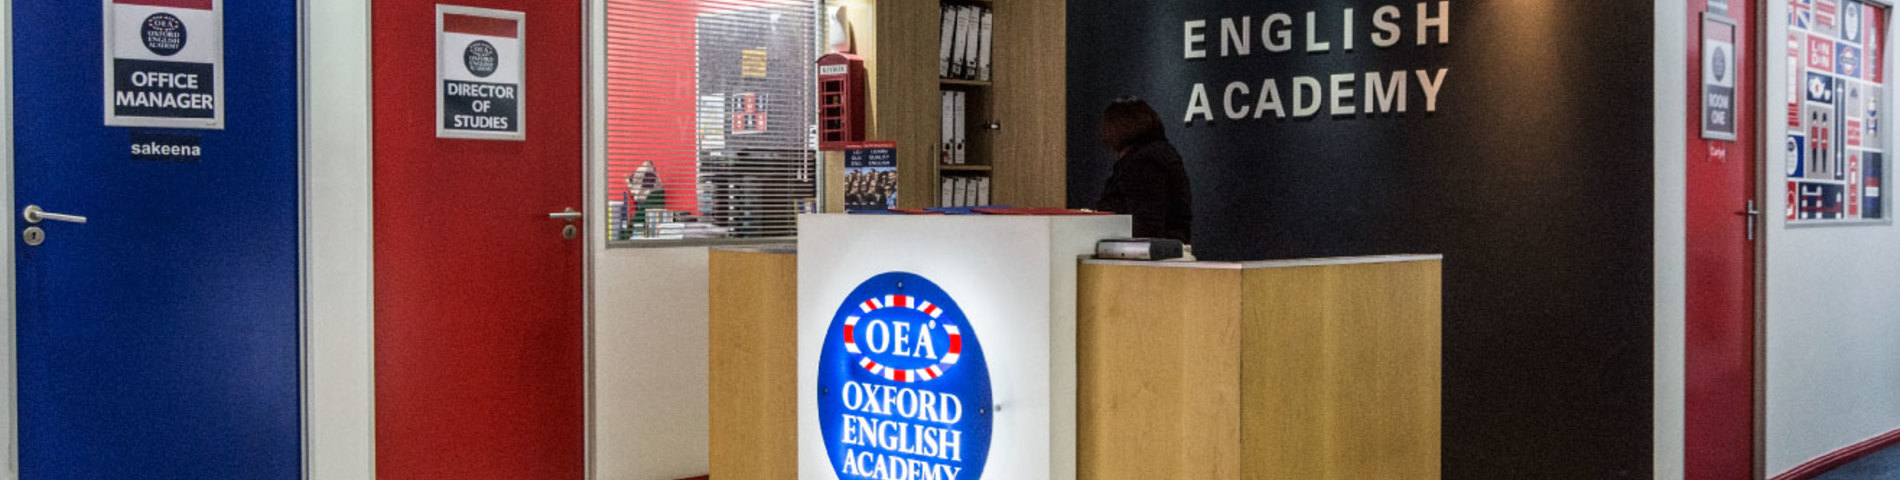 Oxford English Academy зображення 1